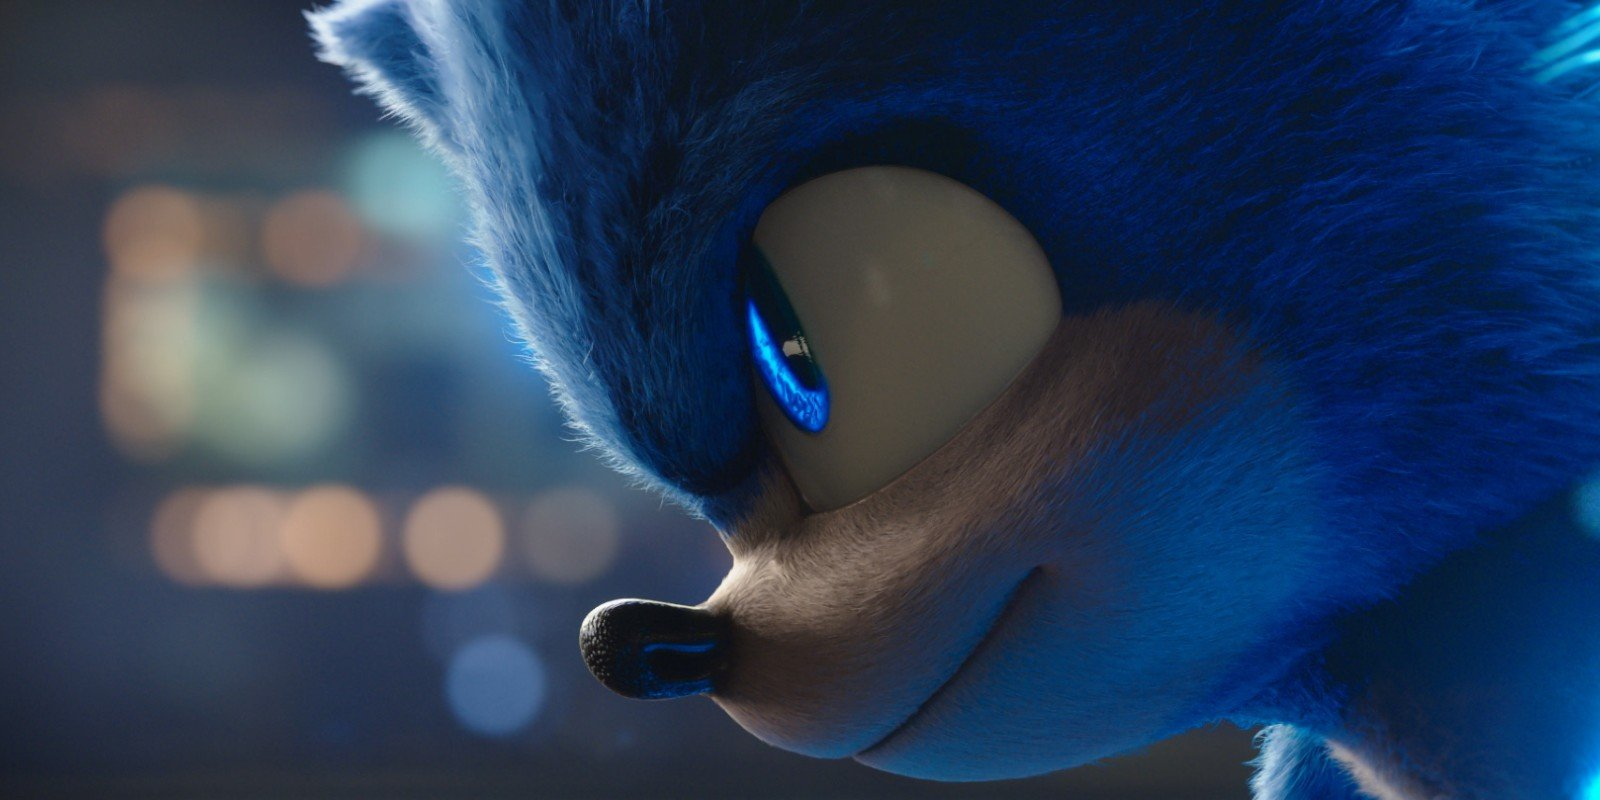 Sonic looks at the camera in the Sonic the Hedgehog movie.